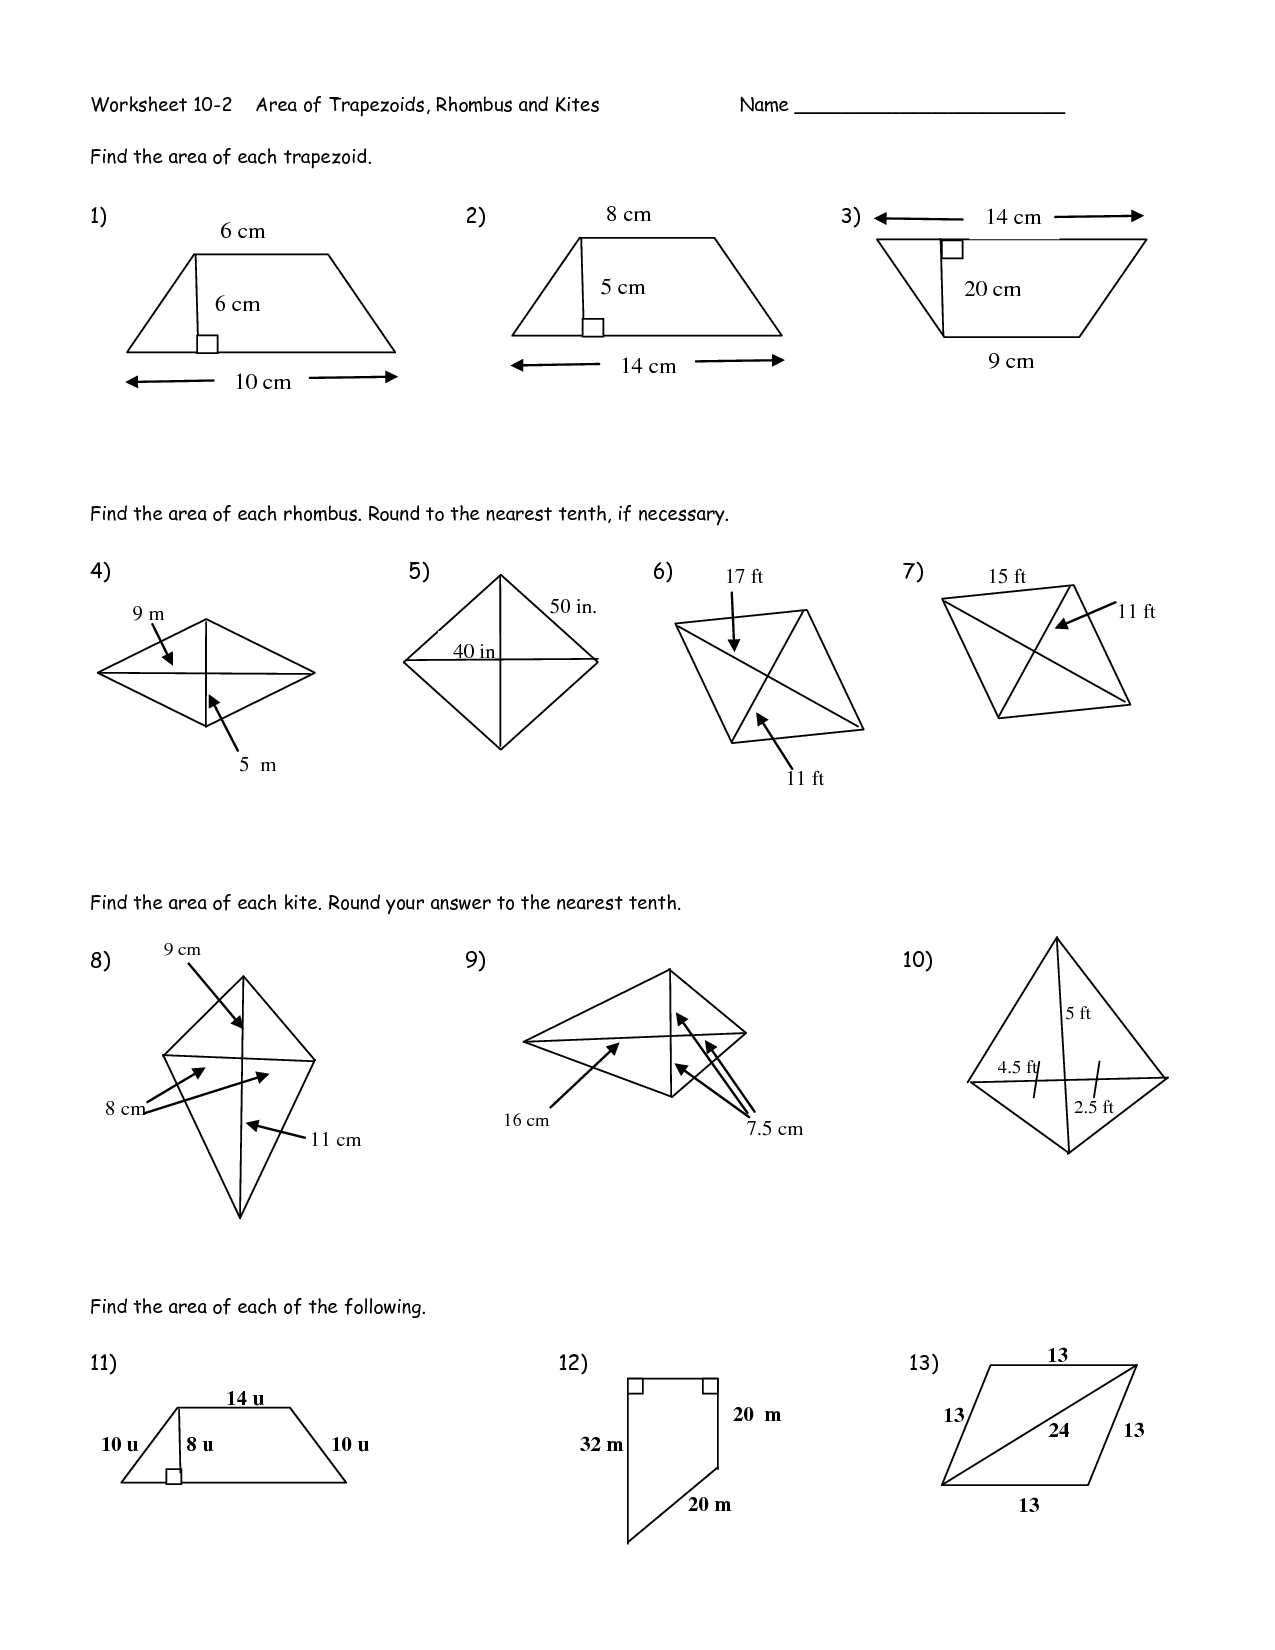 Worksheet Area Of T Zoid Worksheet Worksheet Fun Worksheet Study Site